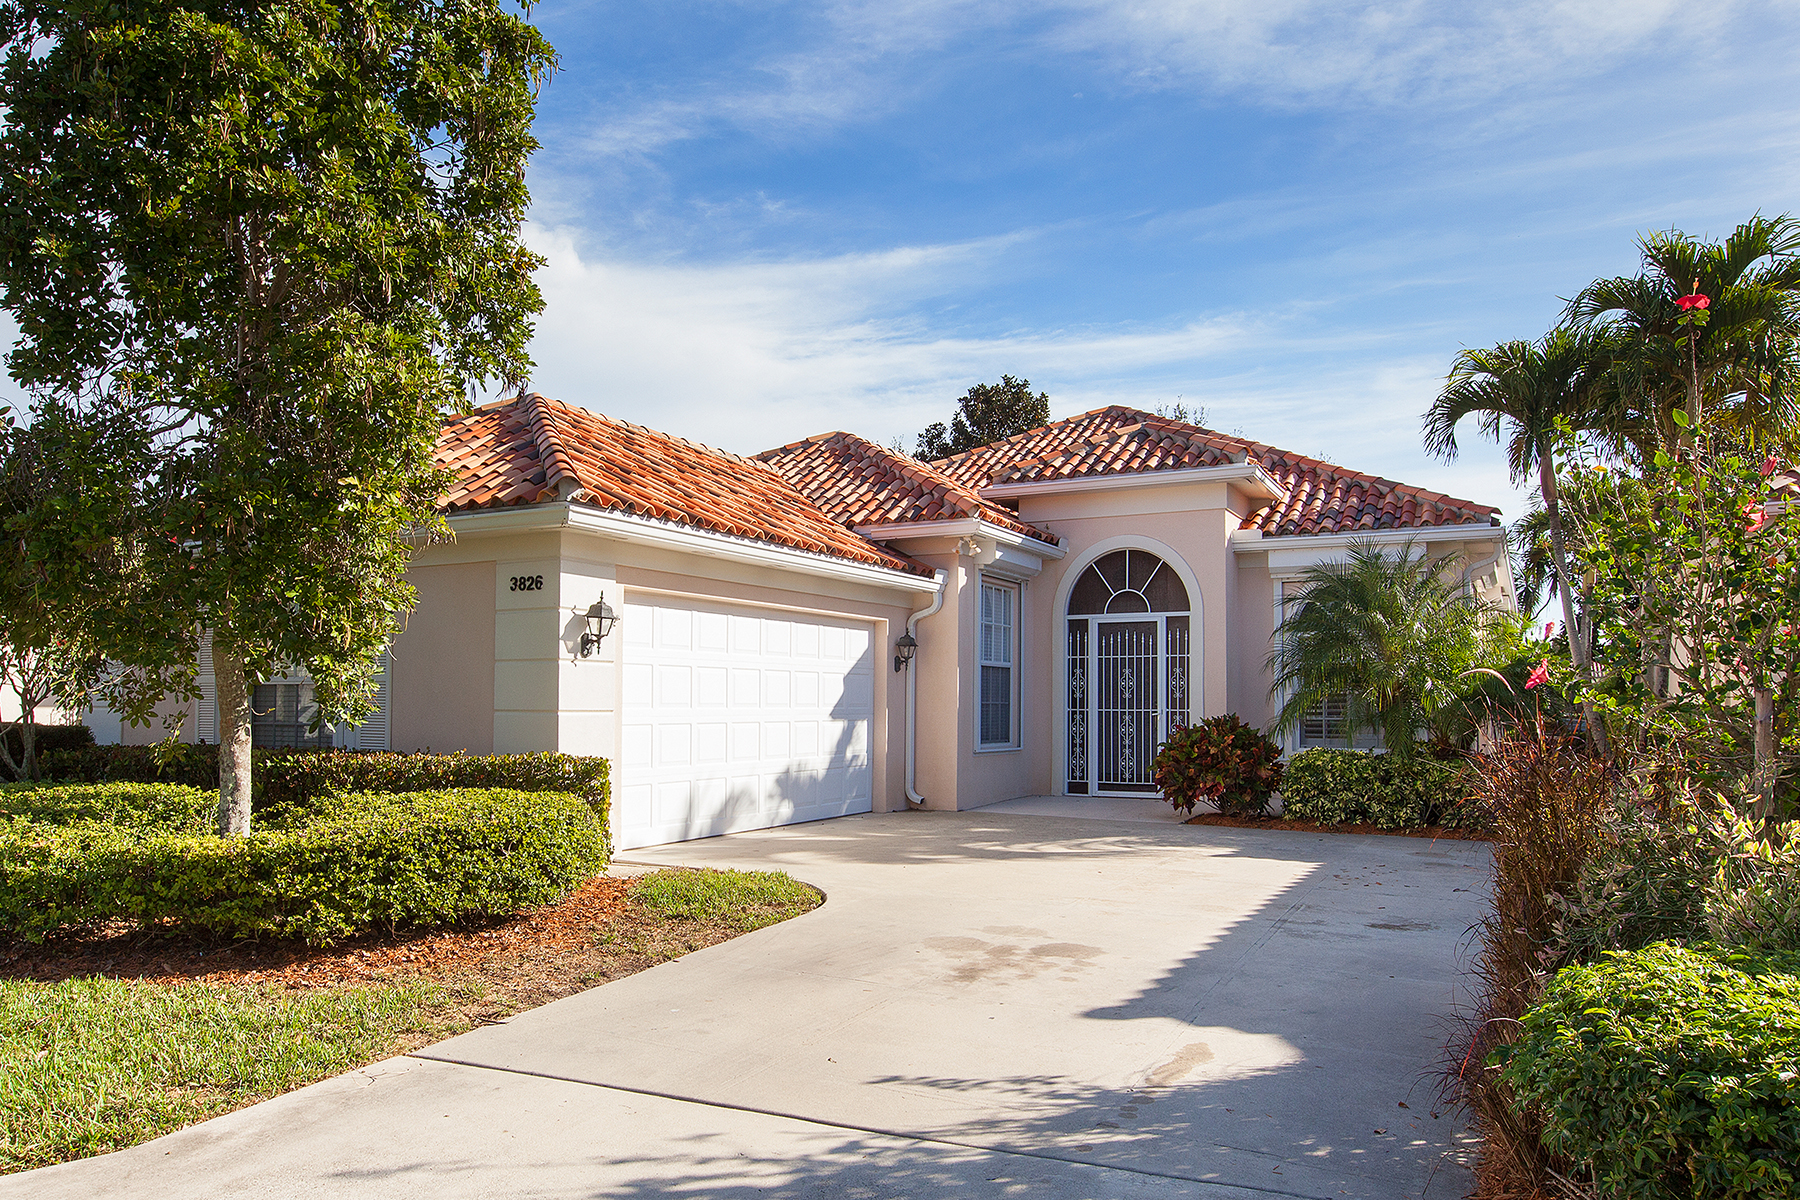 Single Family Home for Sale at Naples 3826 Huelva Ct Naples, Florida, 34109 United States